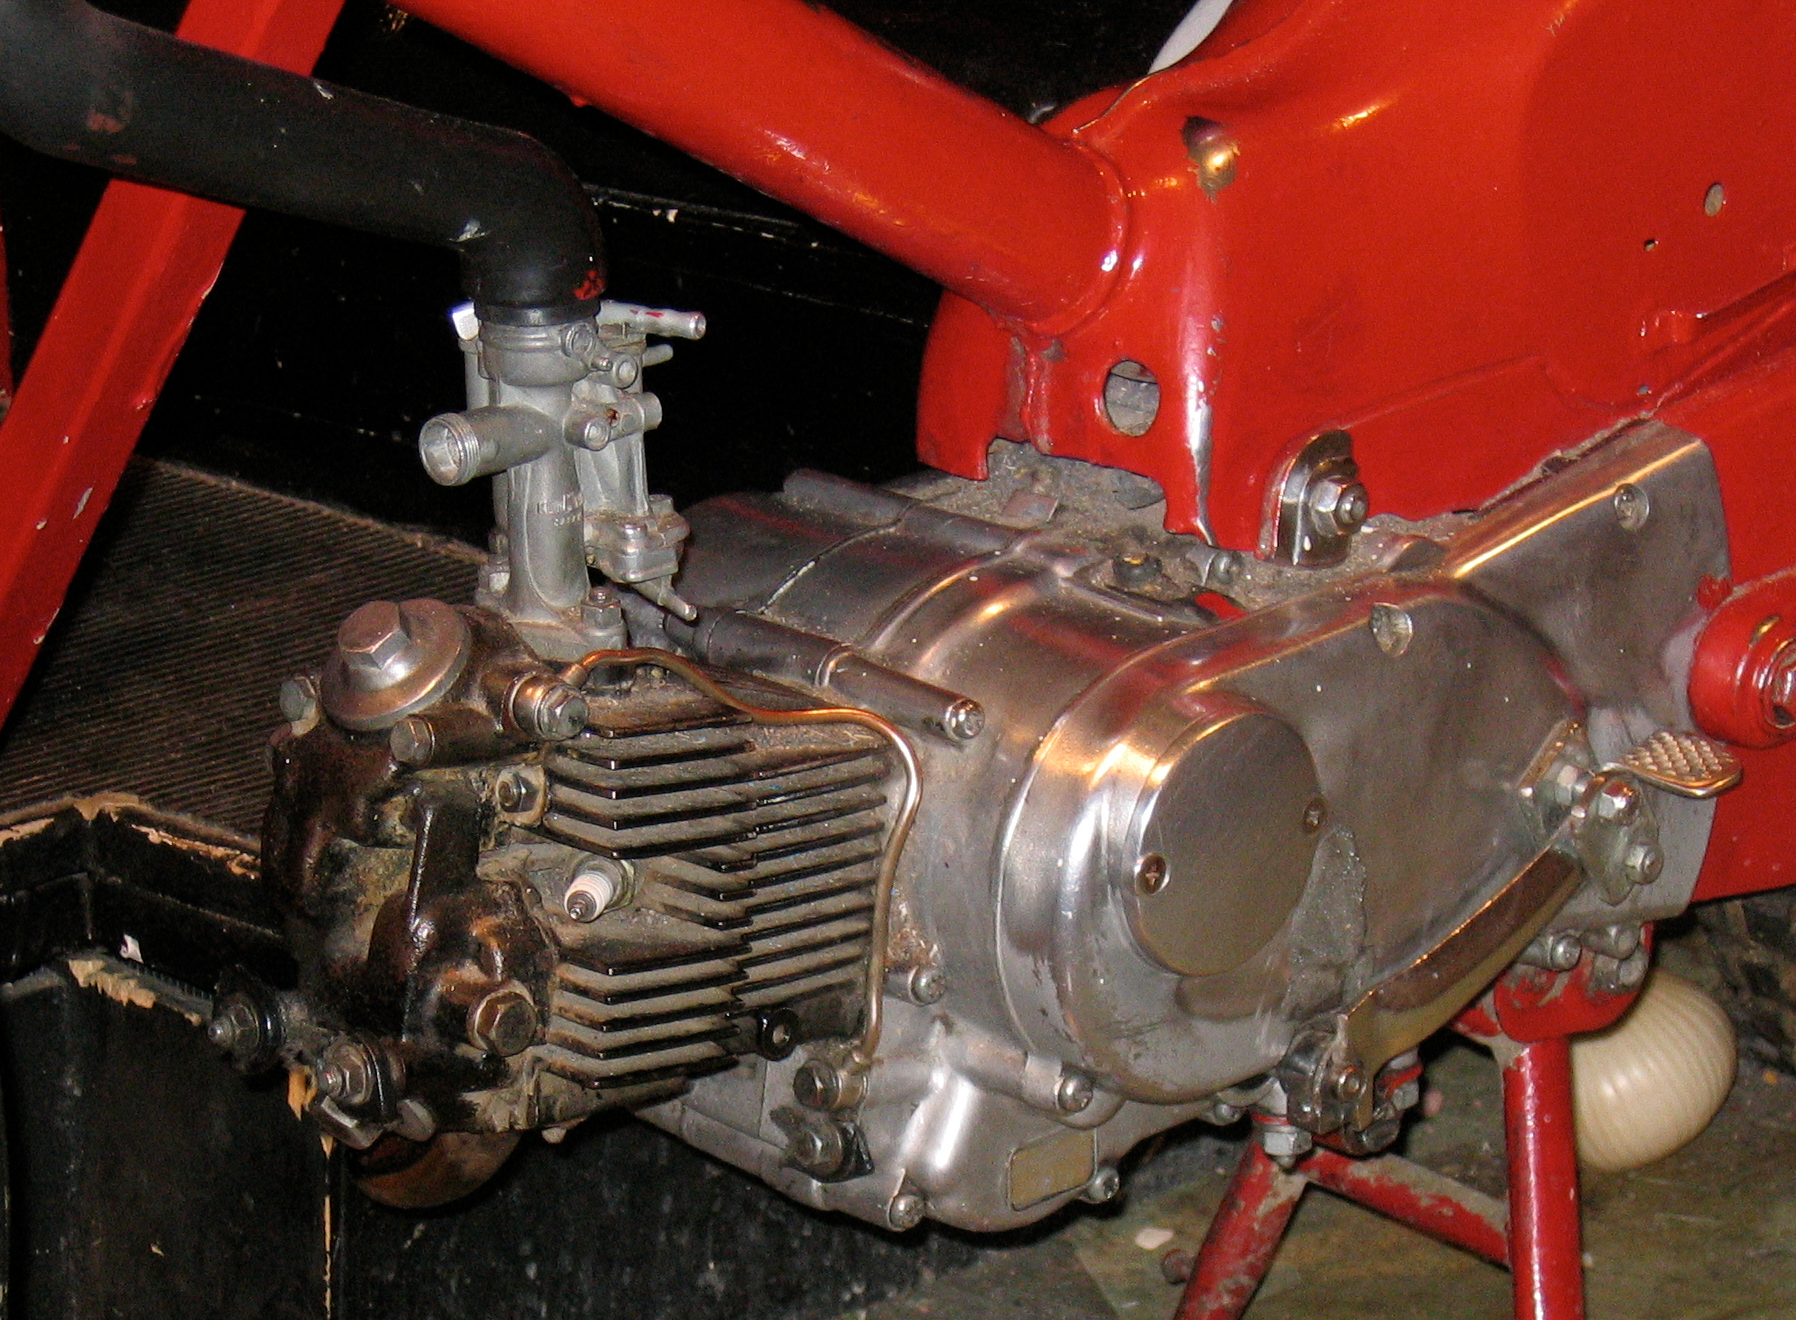 Motorcycle Engine Wikipedia Harleydavidson Motorcycles This Diagram Provides A Parts Detail For